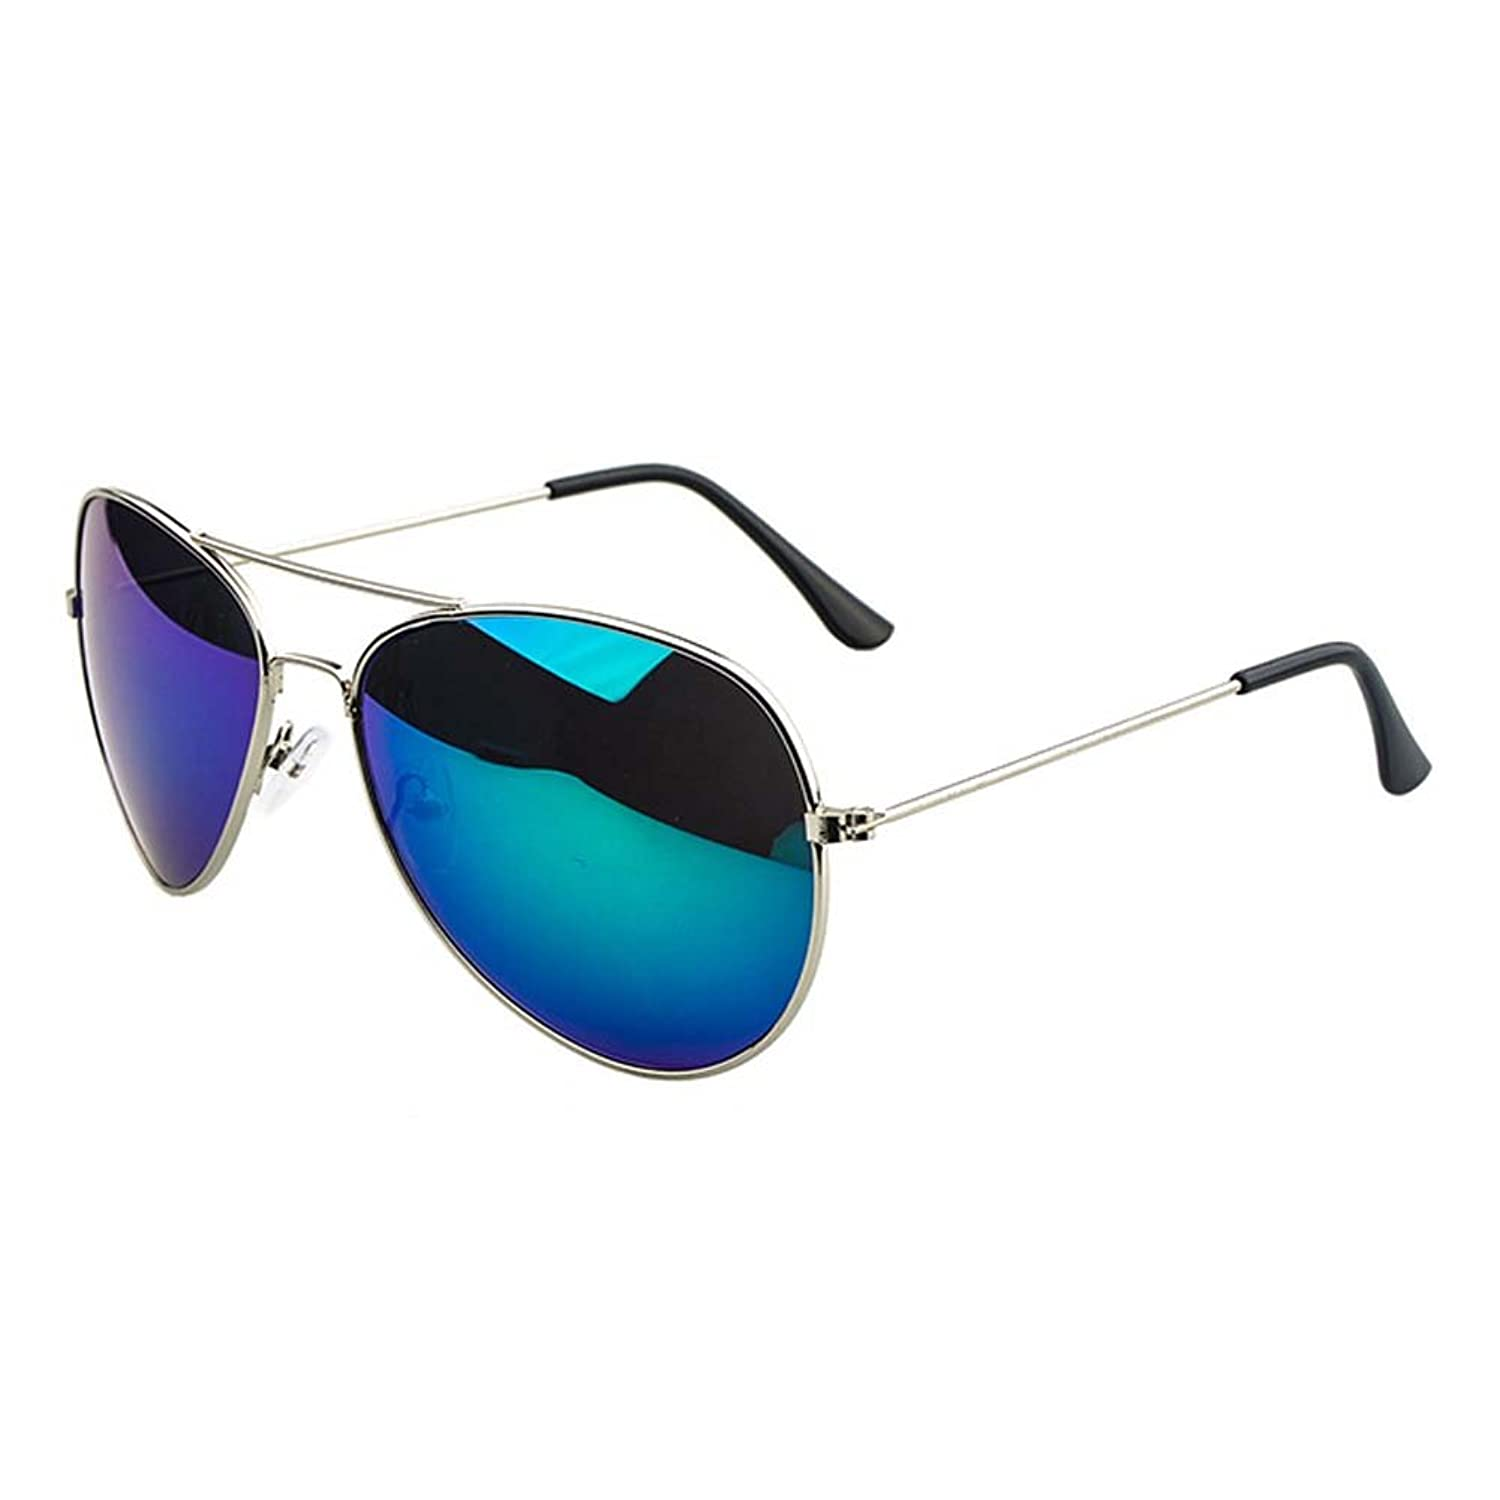 Gray Memory Unisex Colorful Outdoor Blocked the Sunlights Sunglasses